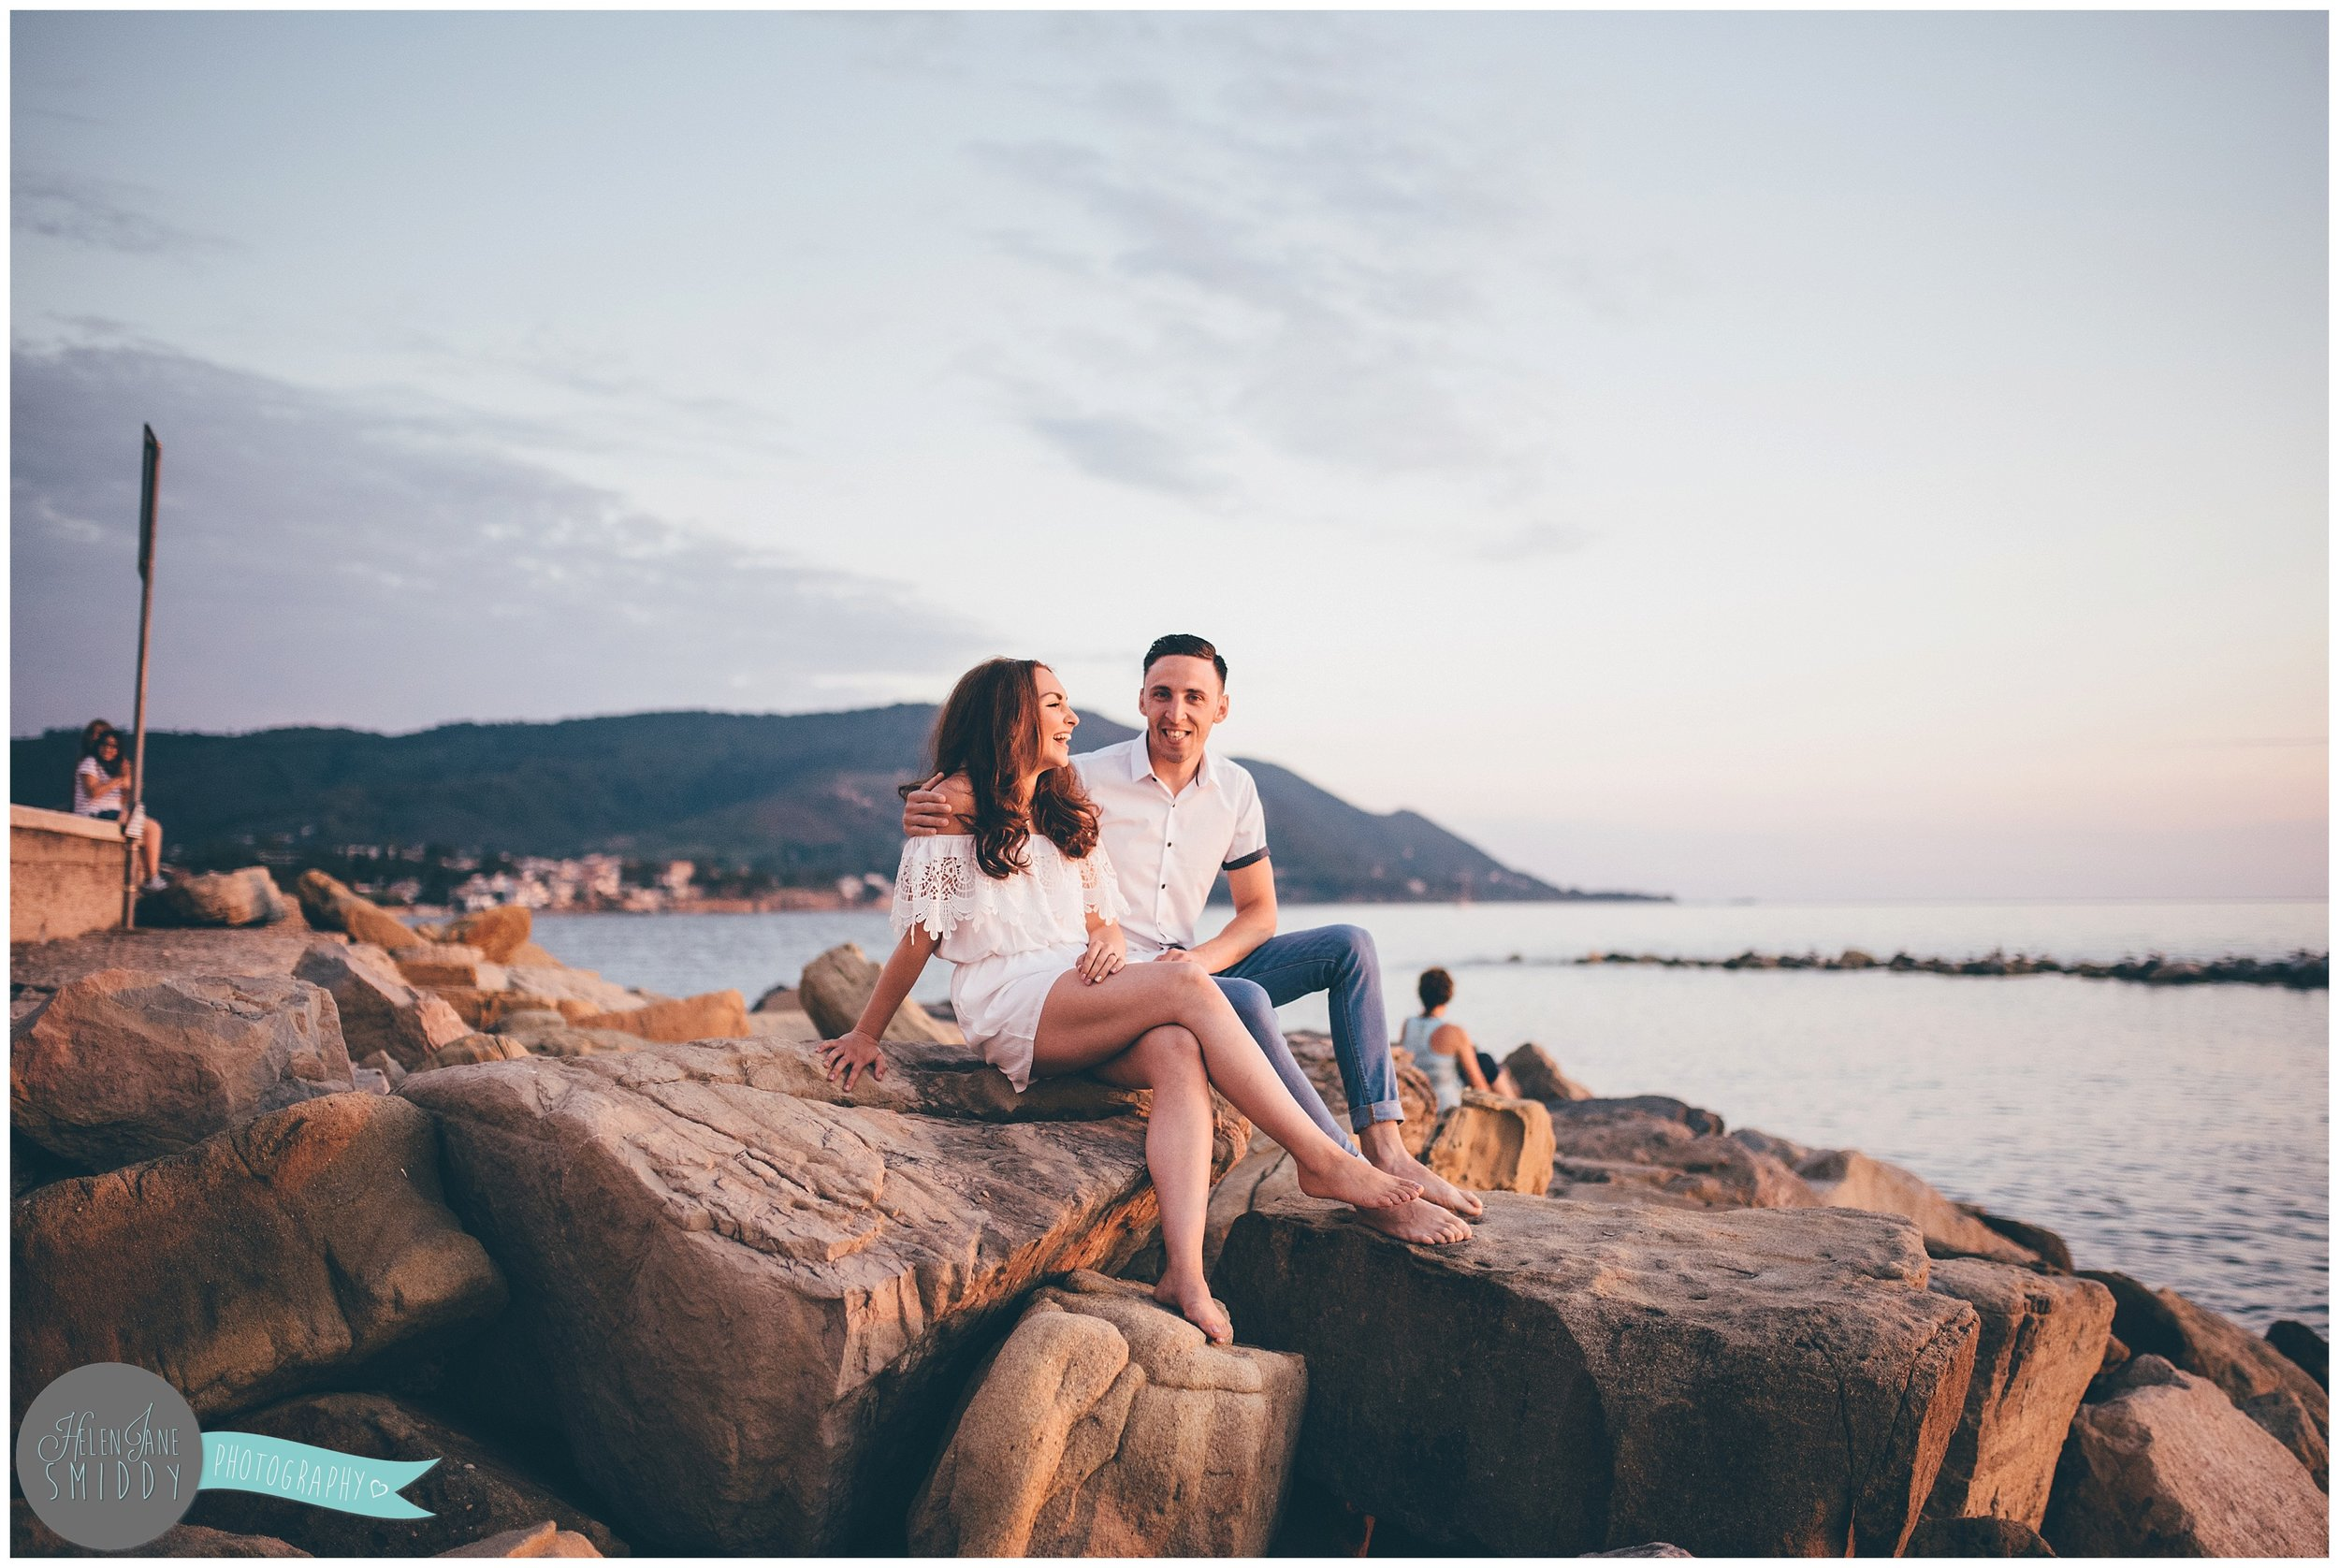 The young couple sit on the rocks on the beach during their Engagement photoshoot in Santa Maria Di Castellabate, Italy.